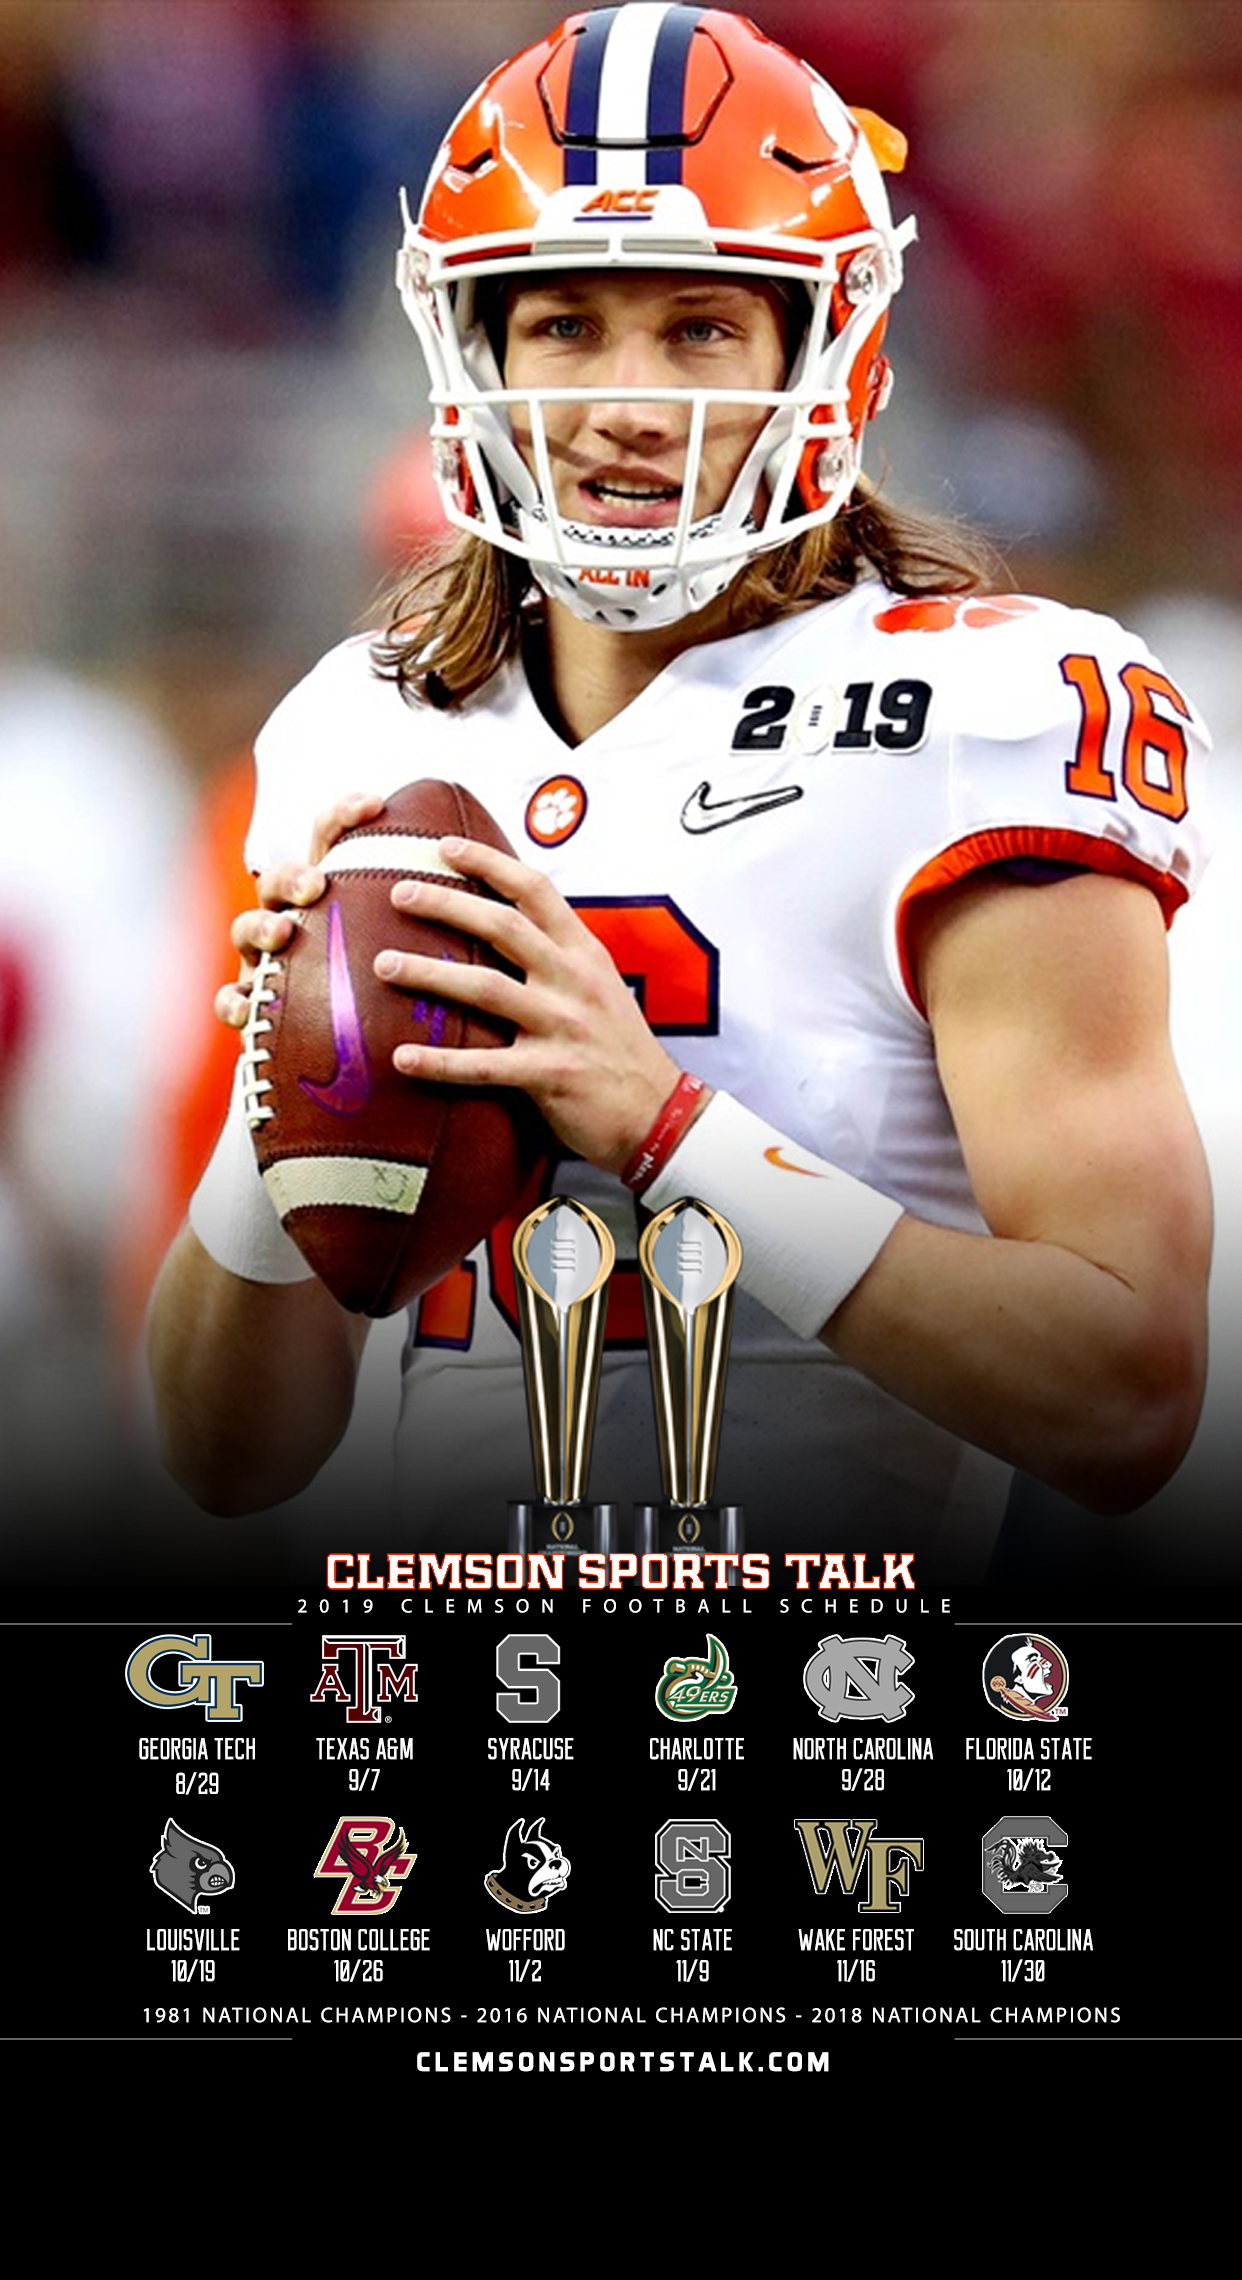 Talk Clemson 2019 | Wallpapers Clemson Sports Schedule